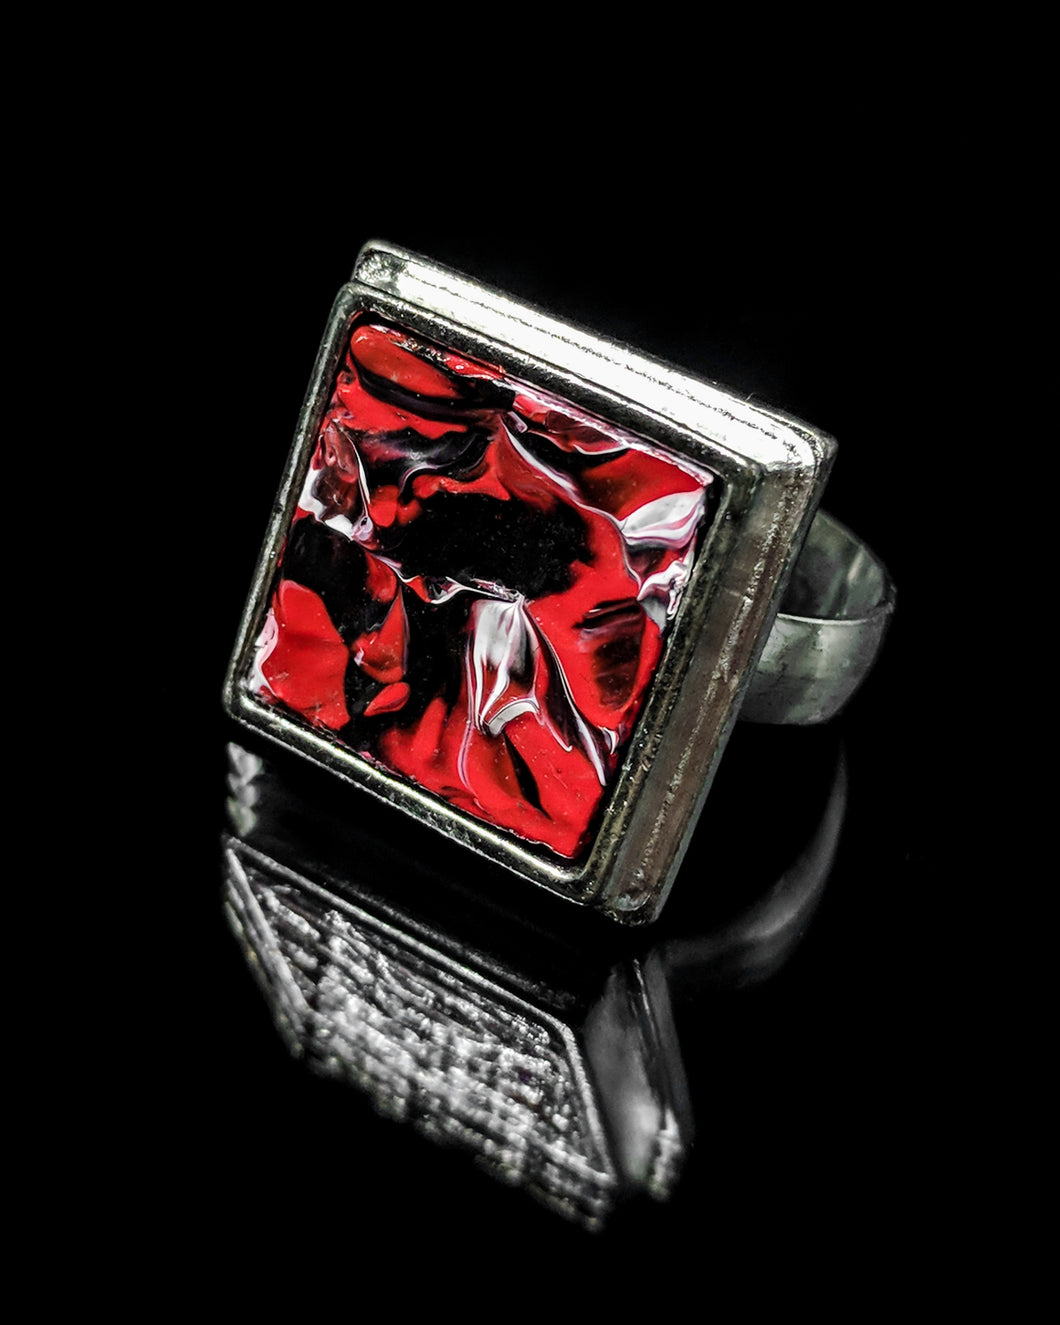 The front of this painted ring has strong red shapes, and black and white accents.